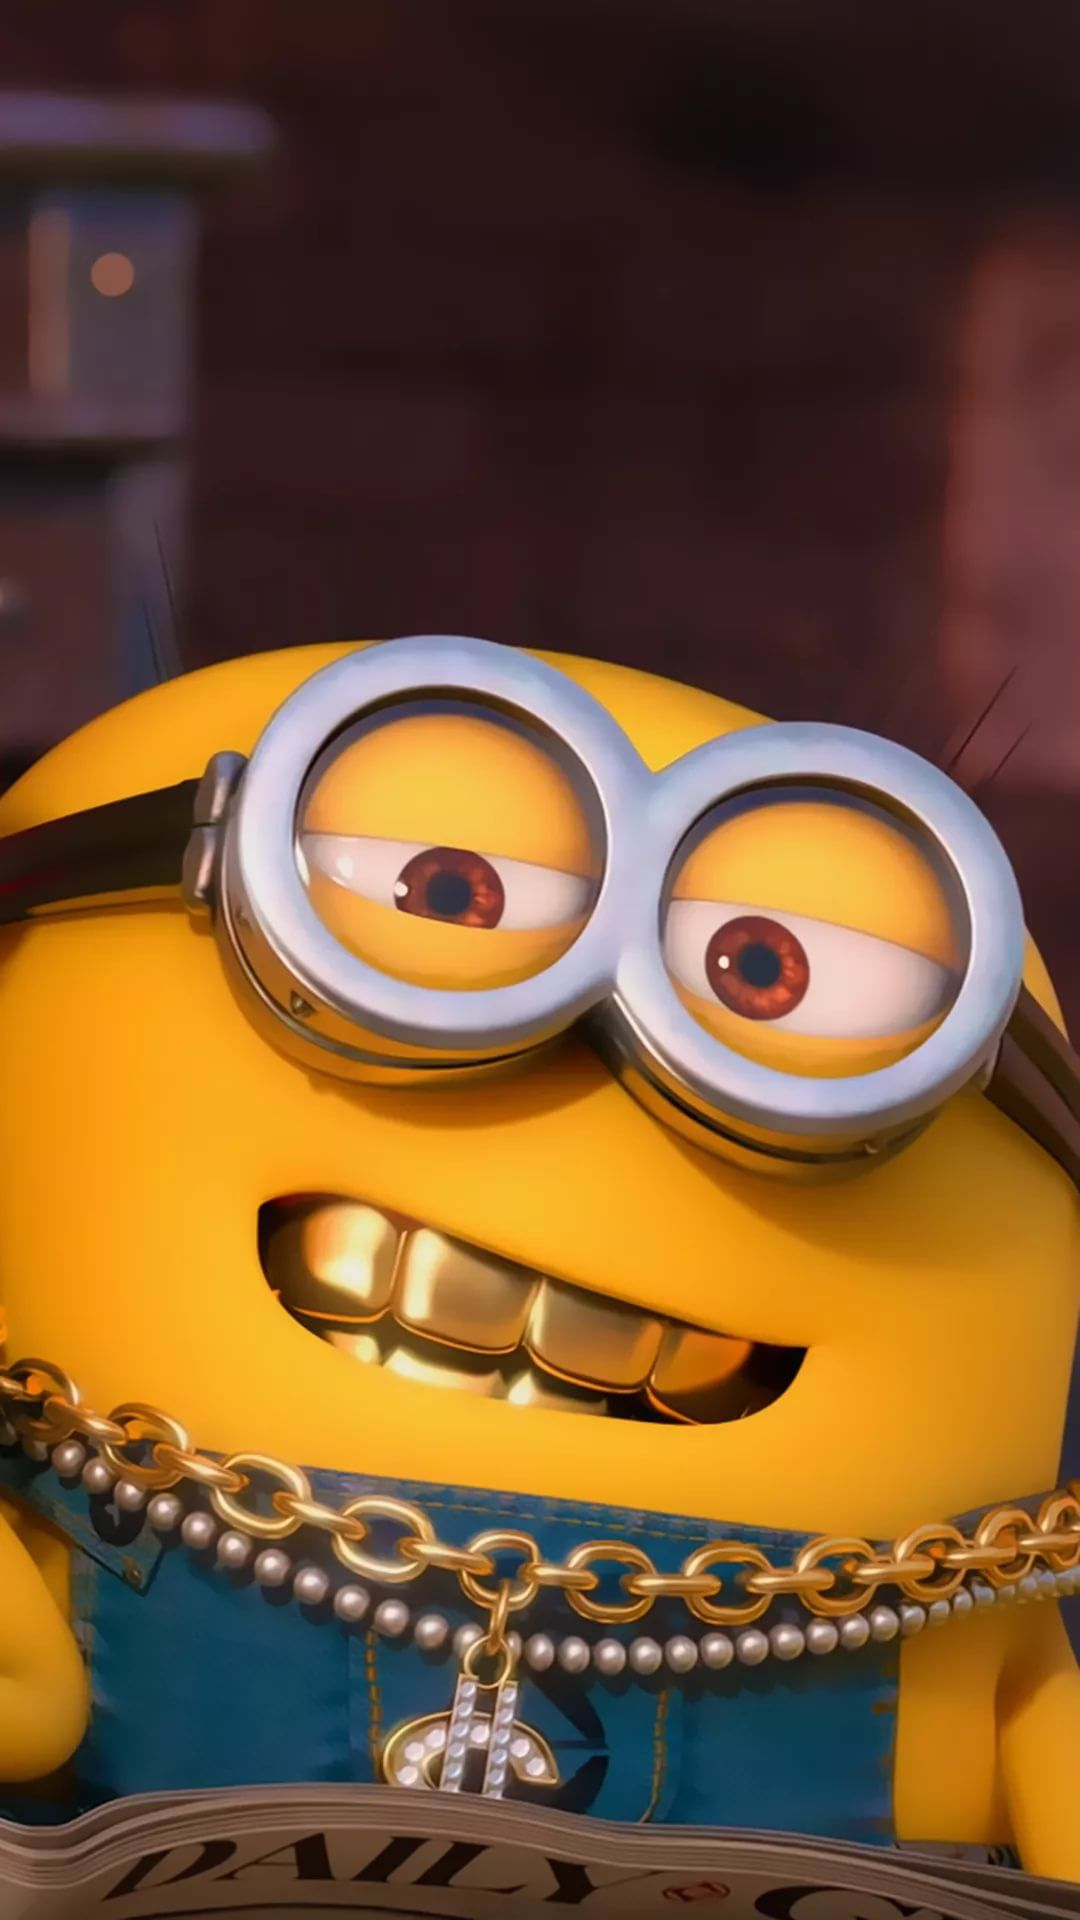 Despicable Me wallpaper for android